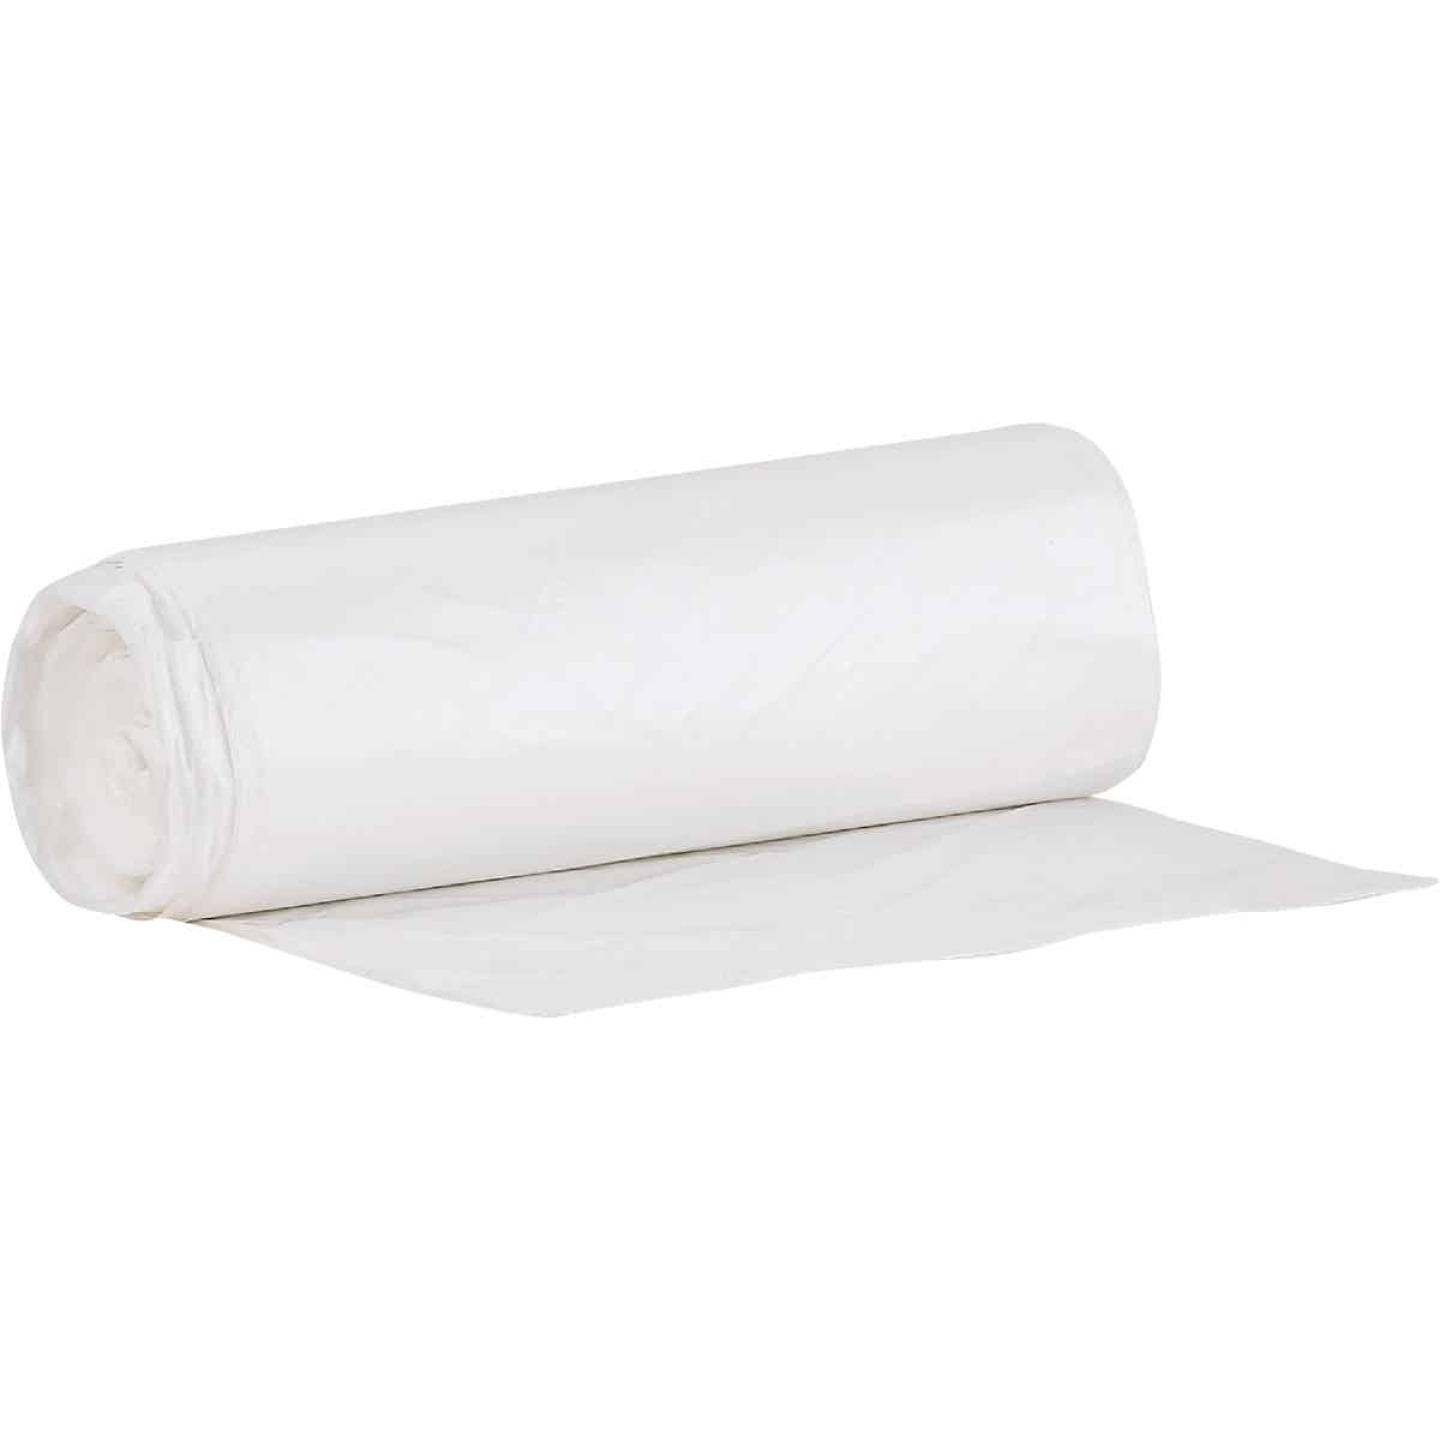 Performance Plus 30 Gal. Natural High Density Can Liner (500-Count) Image 1